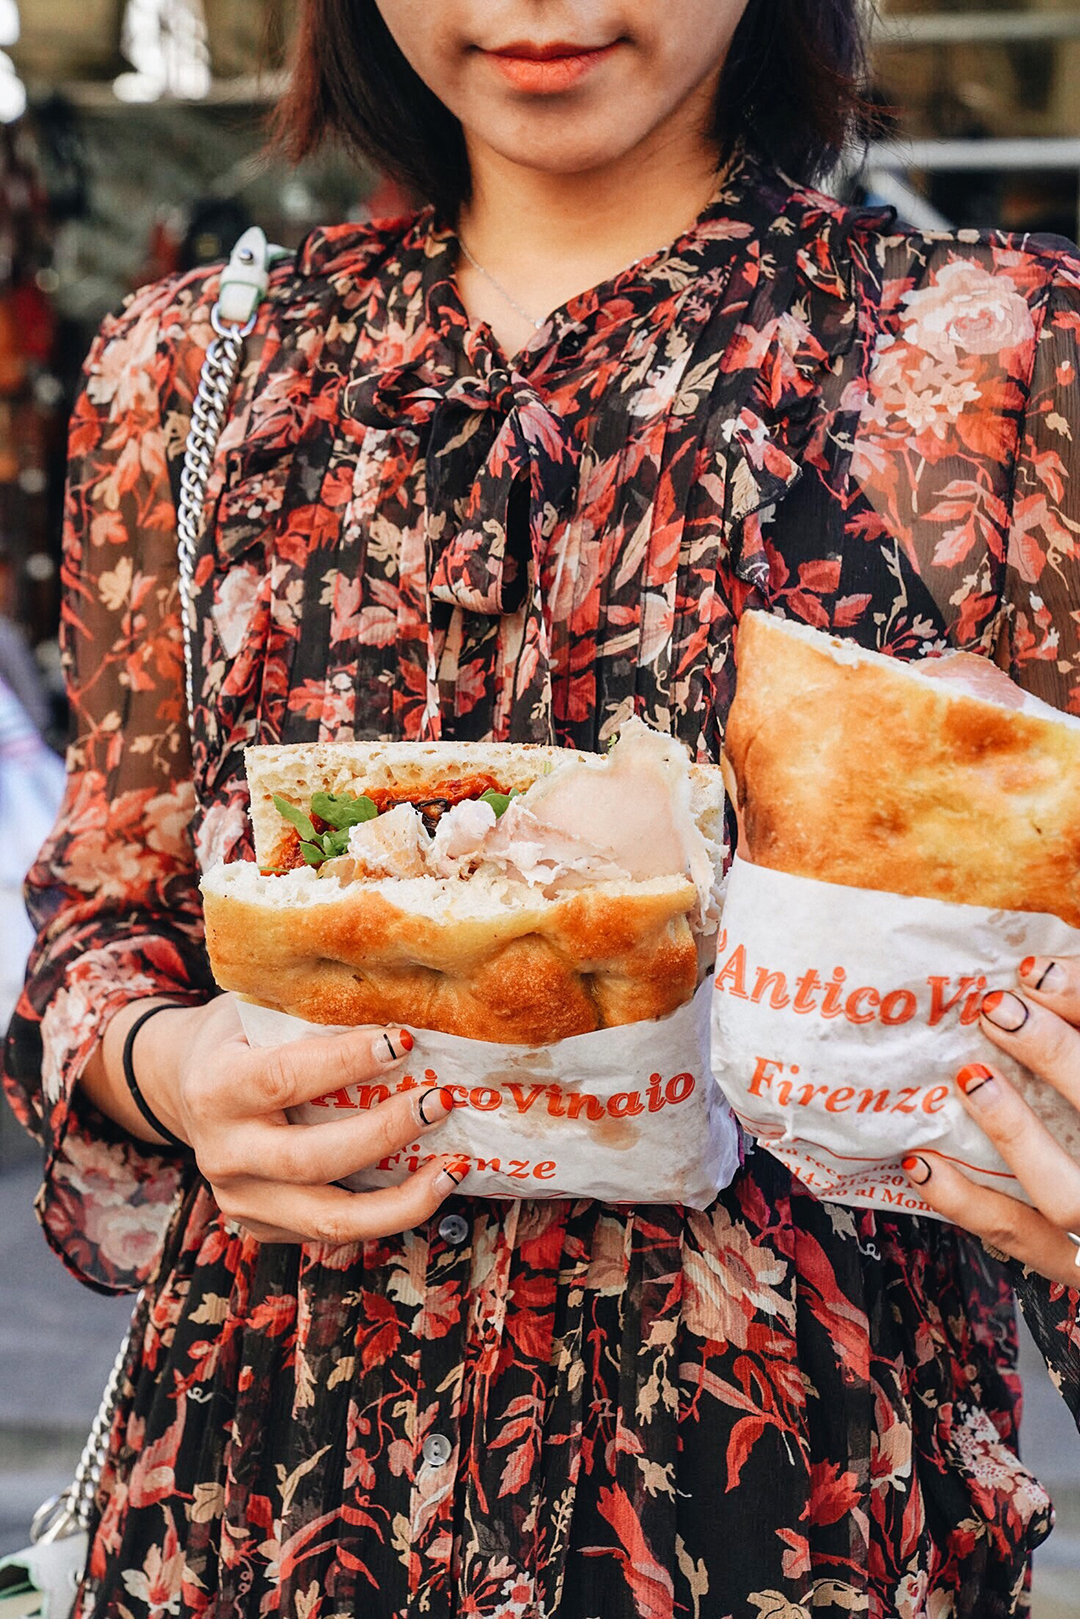 Giant Paninis from  All'antico Vinaio Firenze